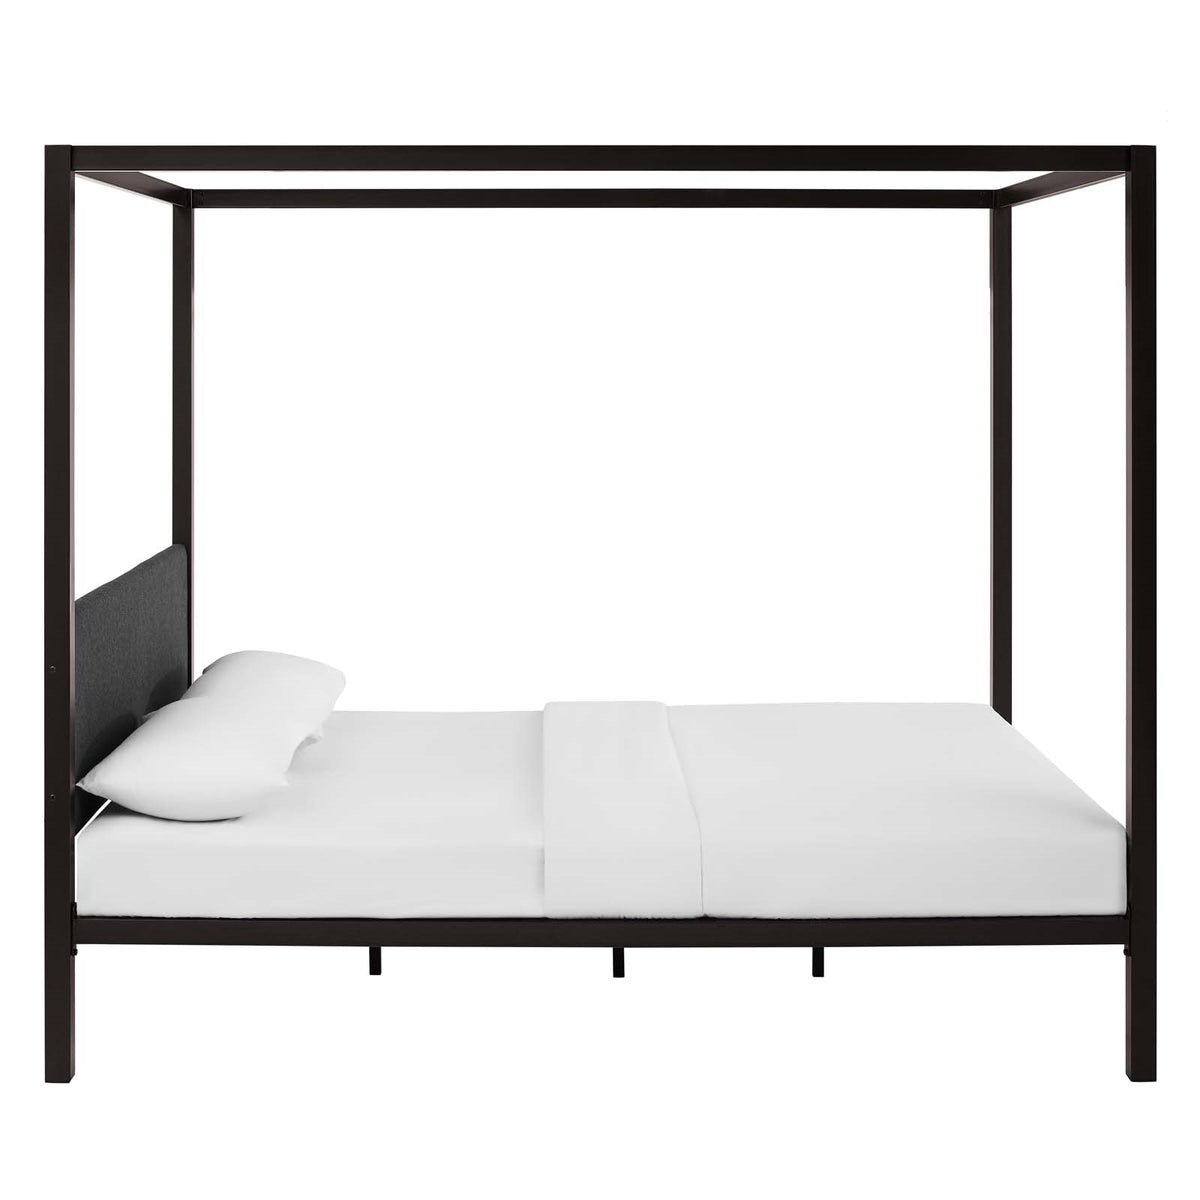 Nexo Canopy Queen Bed Gray